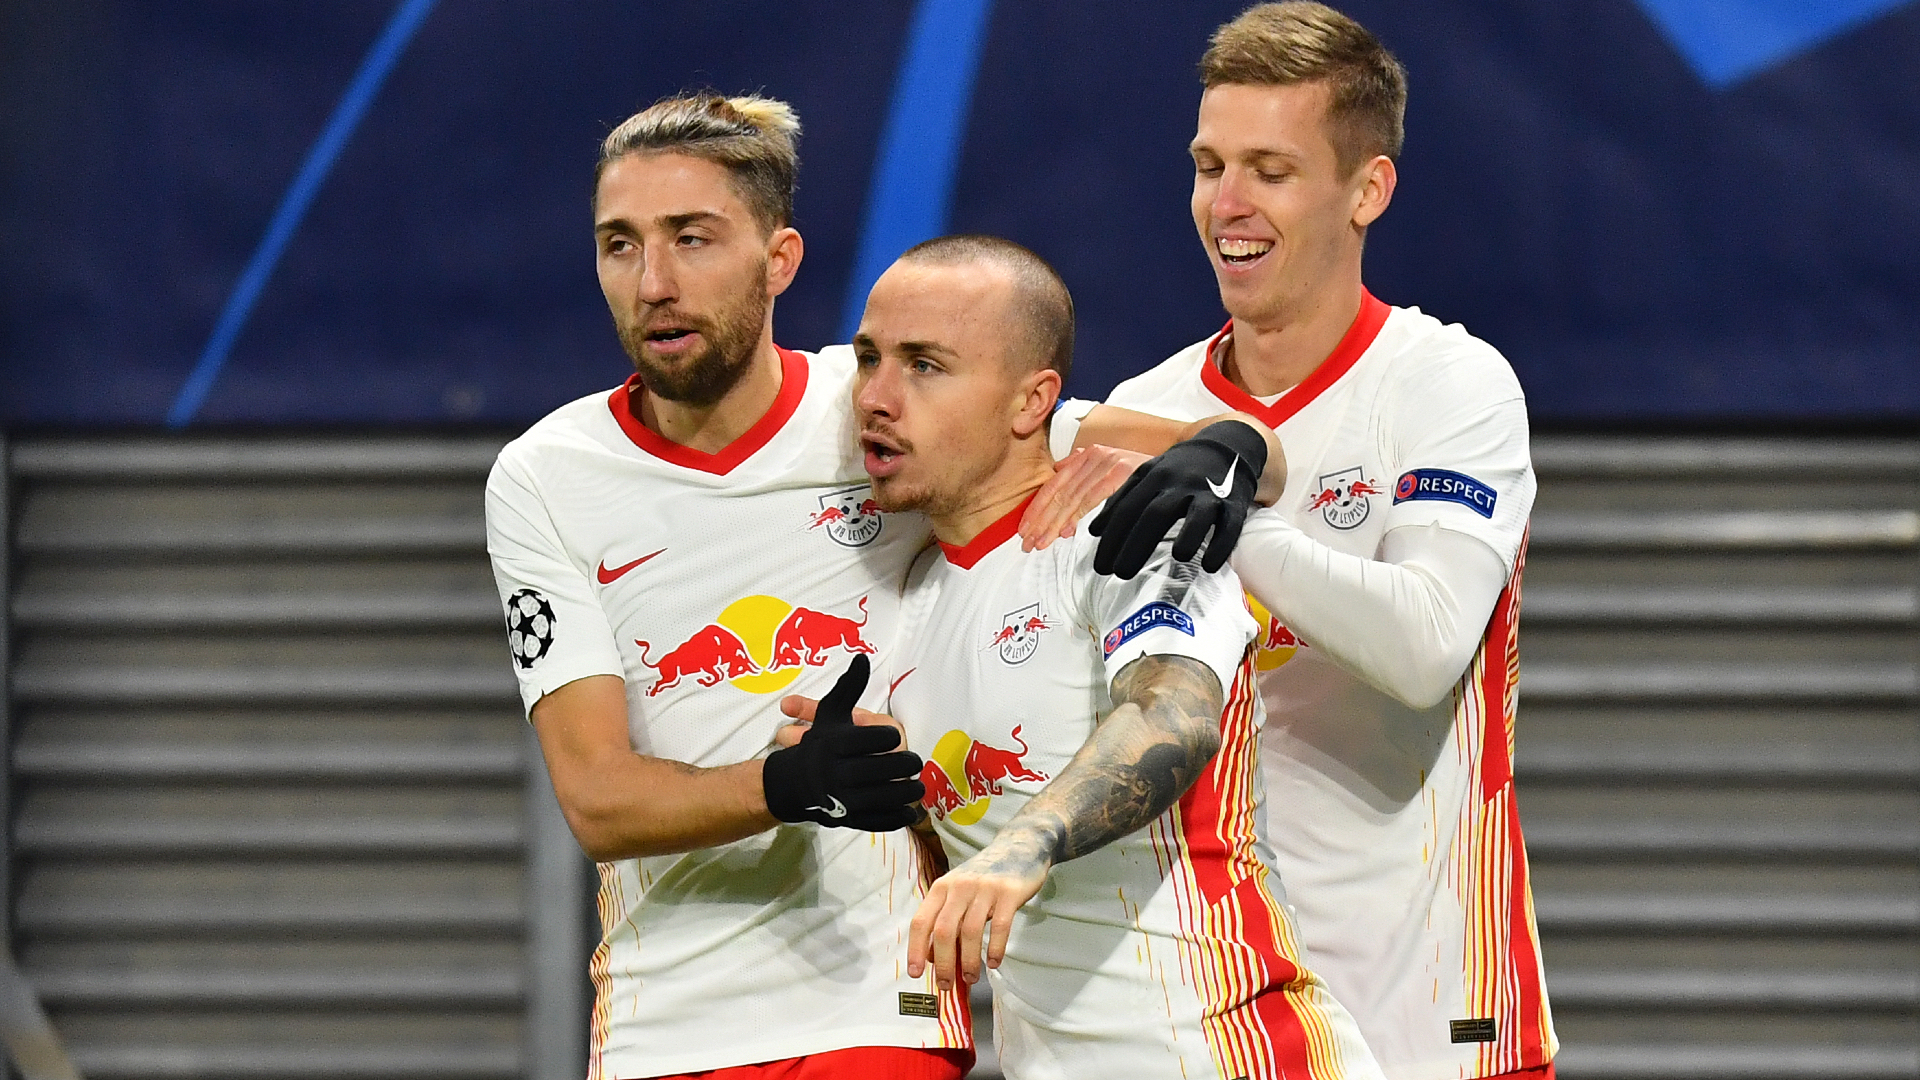 Tottenham and Budapest are options to stage RB Leipzig vs Liverpool Champions League tie